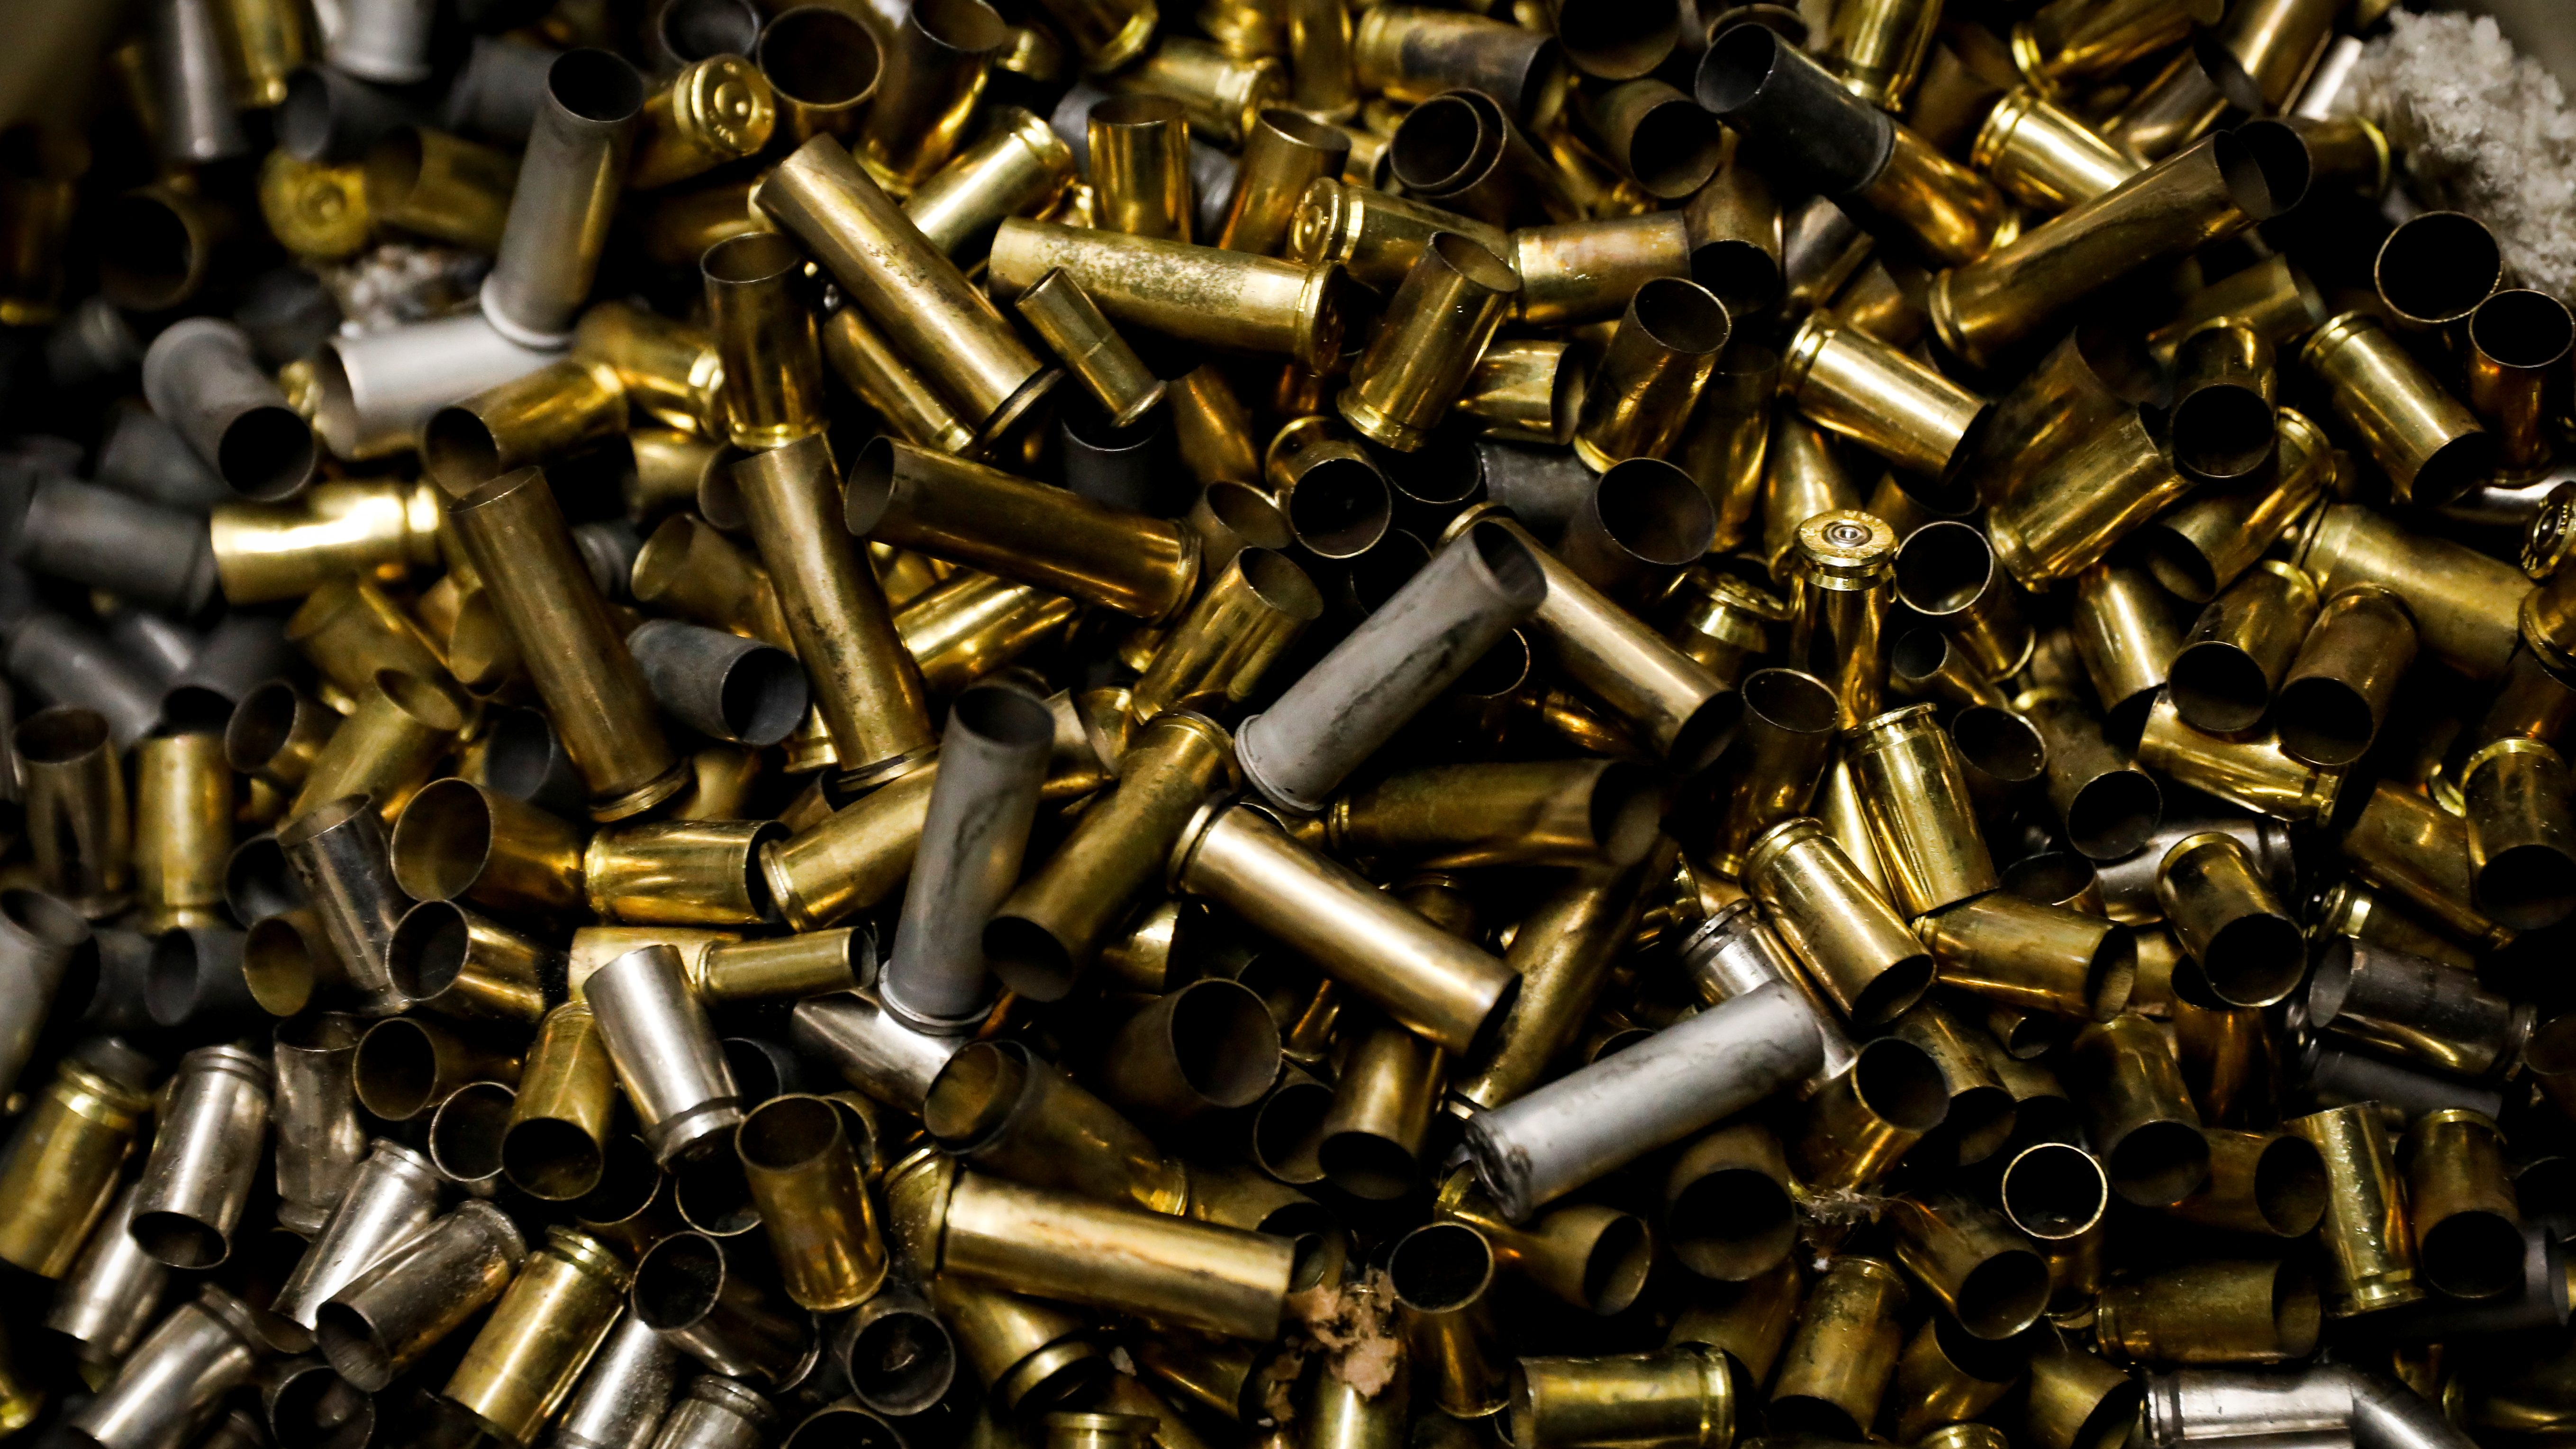 Discarded bullet shell cases are seen at Master Class Shooting Range in Monroe, New York, USA